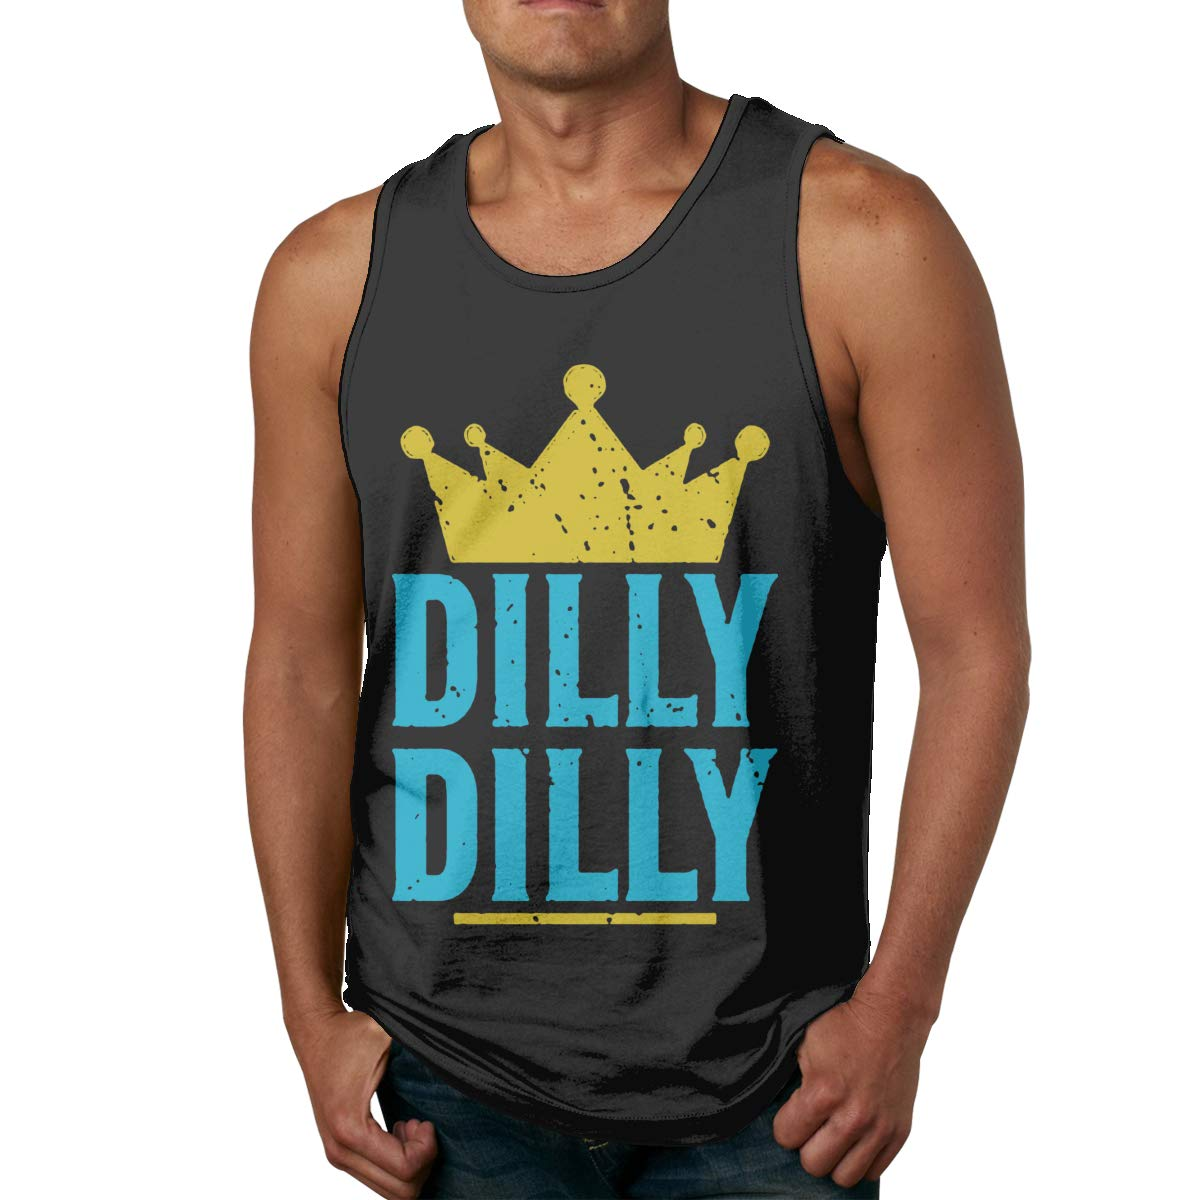 FKAHQ Dilly Dilly Crown Artwork Men Printed Vest Sports Tank-Top T Shirt Leisure Sleeveless T-Shirt